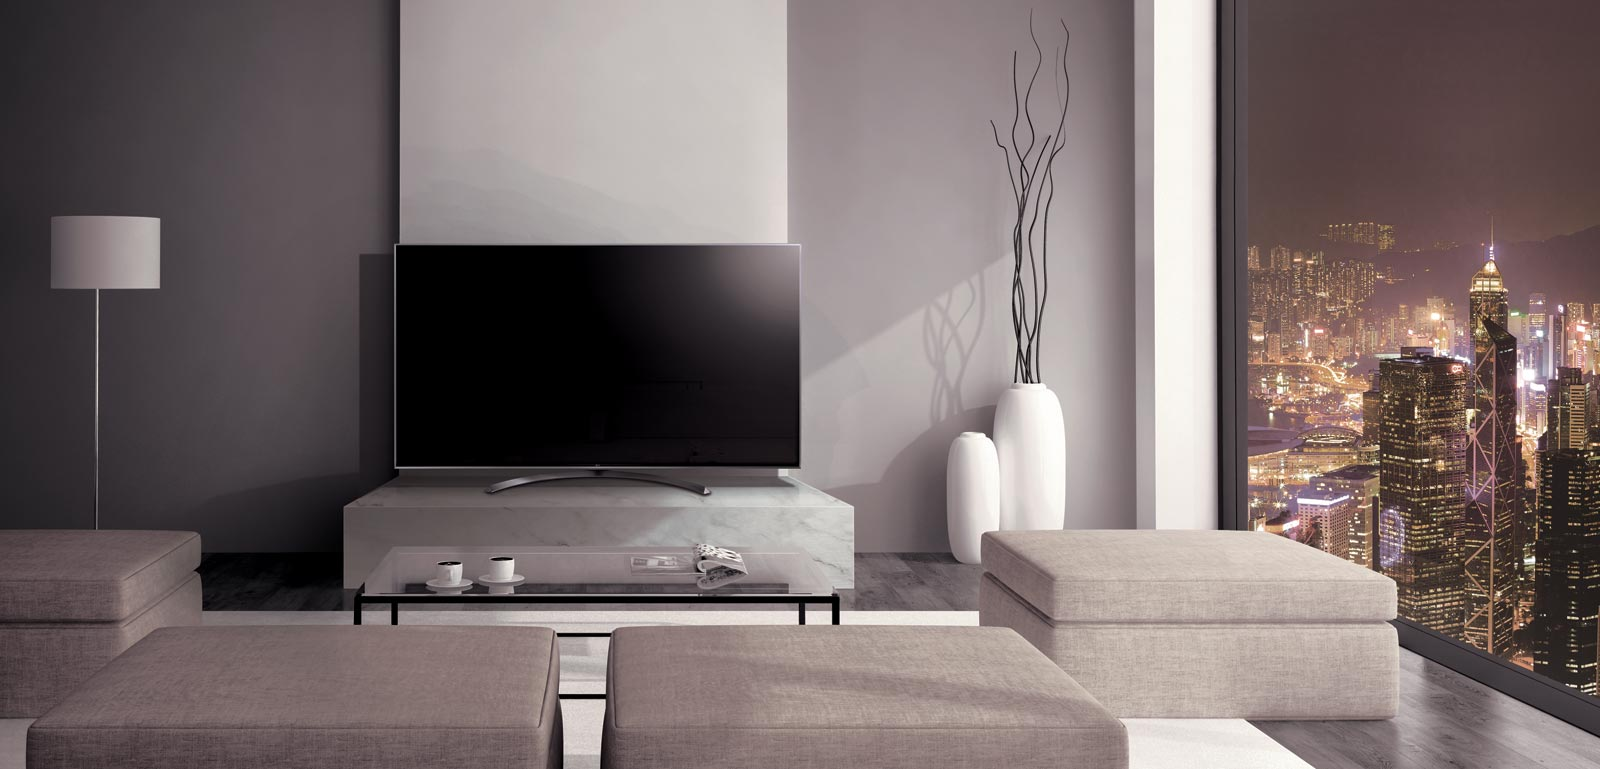 The New Lg Tvs Will Start Shipping Spring 2017 W7 Debut This Summer We Update Overview As Receive And Confirm More Specific Details